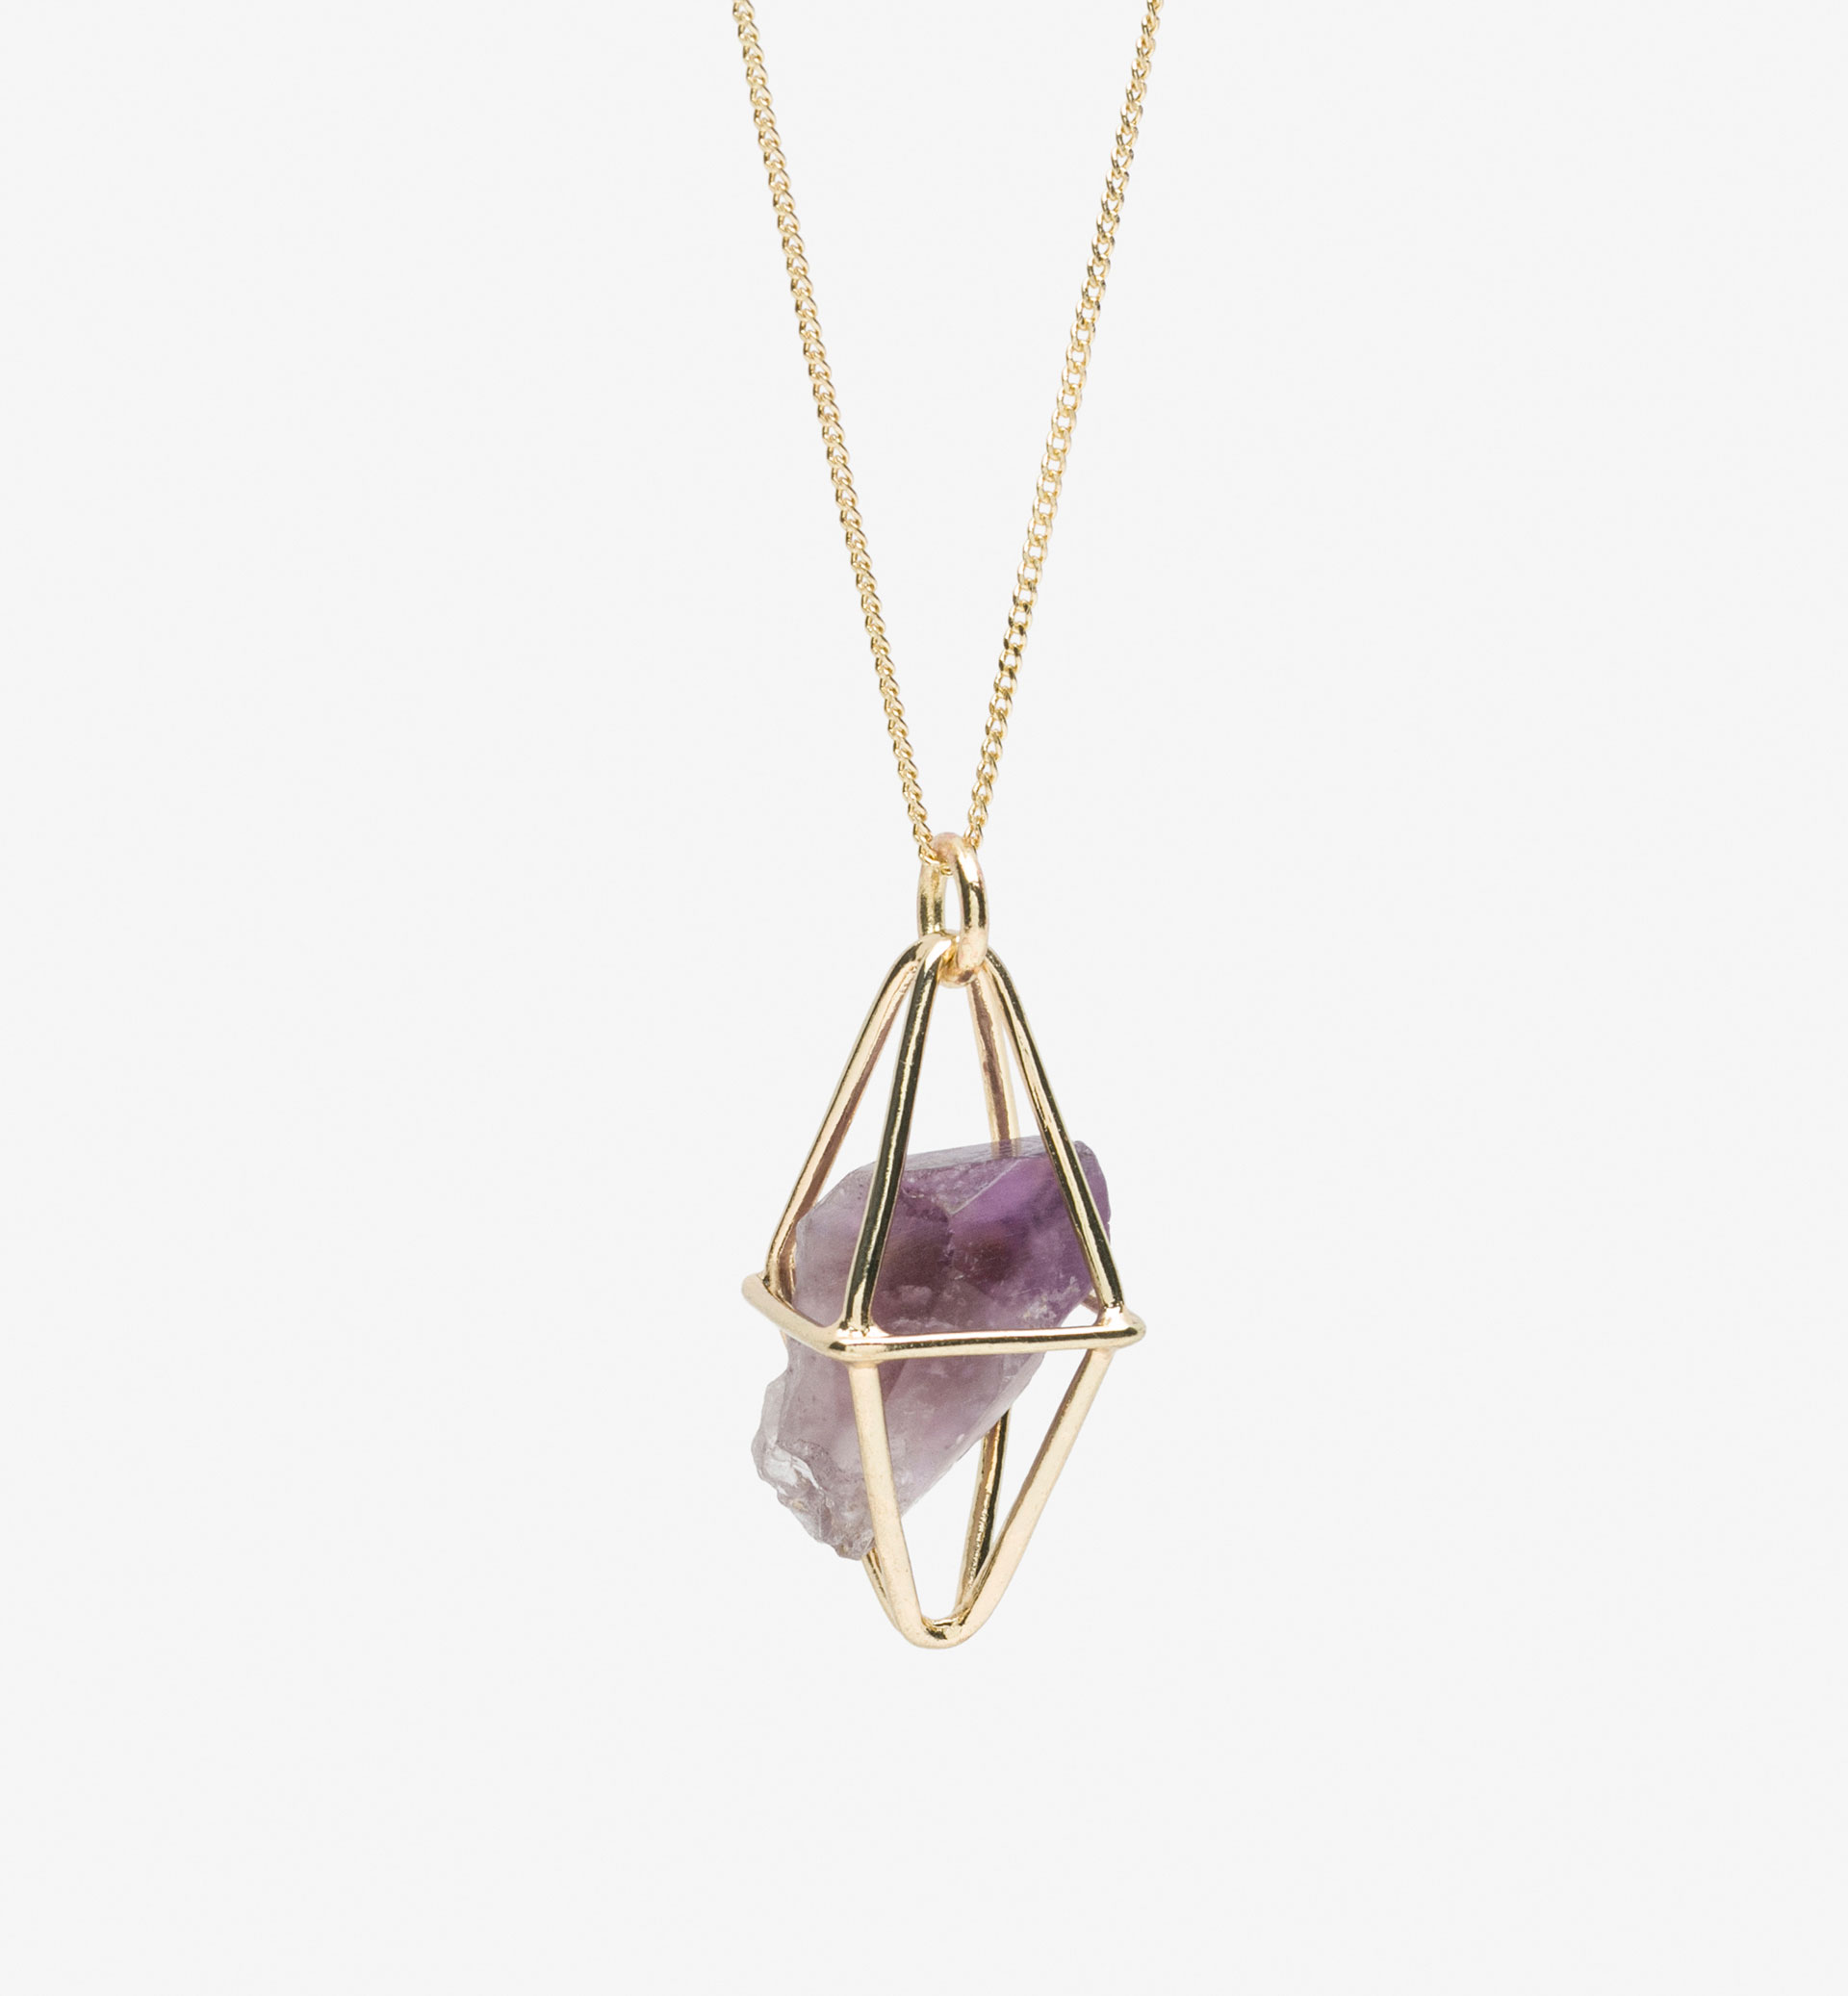 BOX AND AMETHYST DETAIL NECKLACE